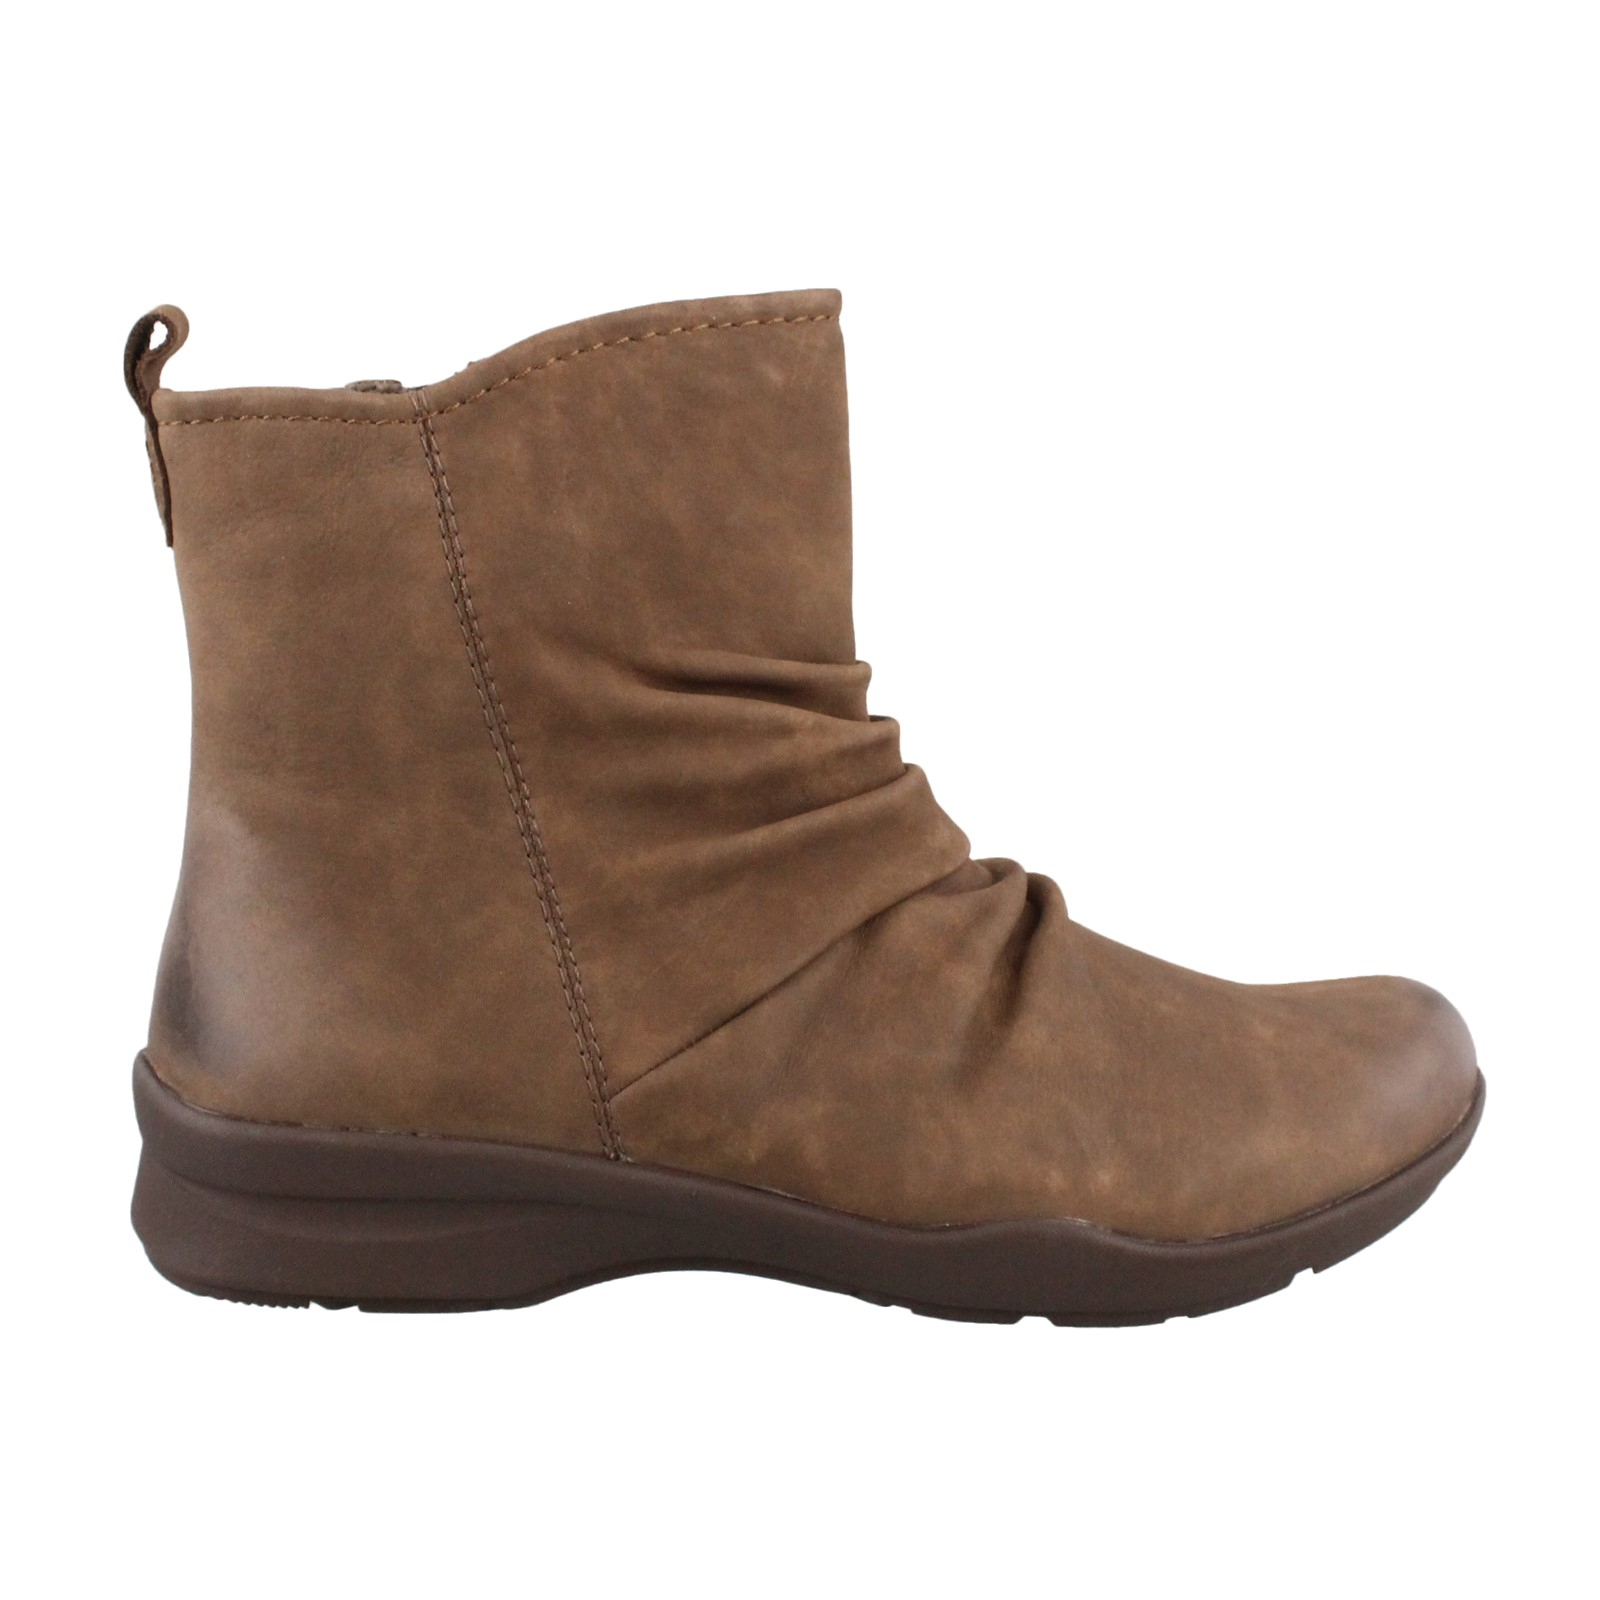 Women's Earth, Treasure Ankle Boots